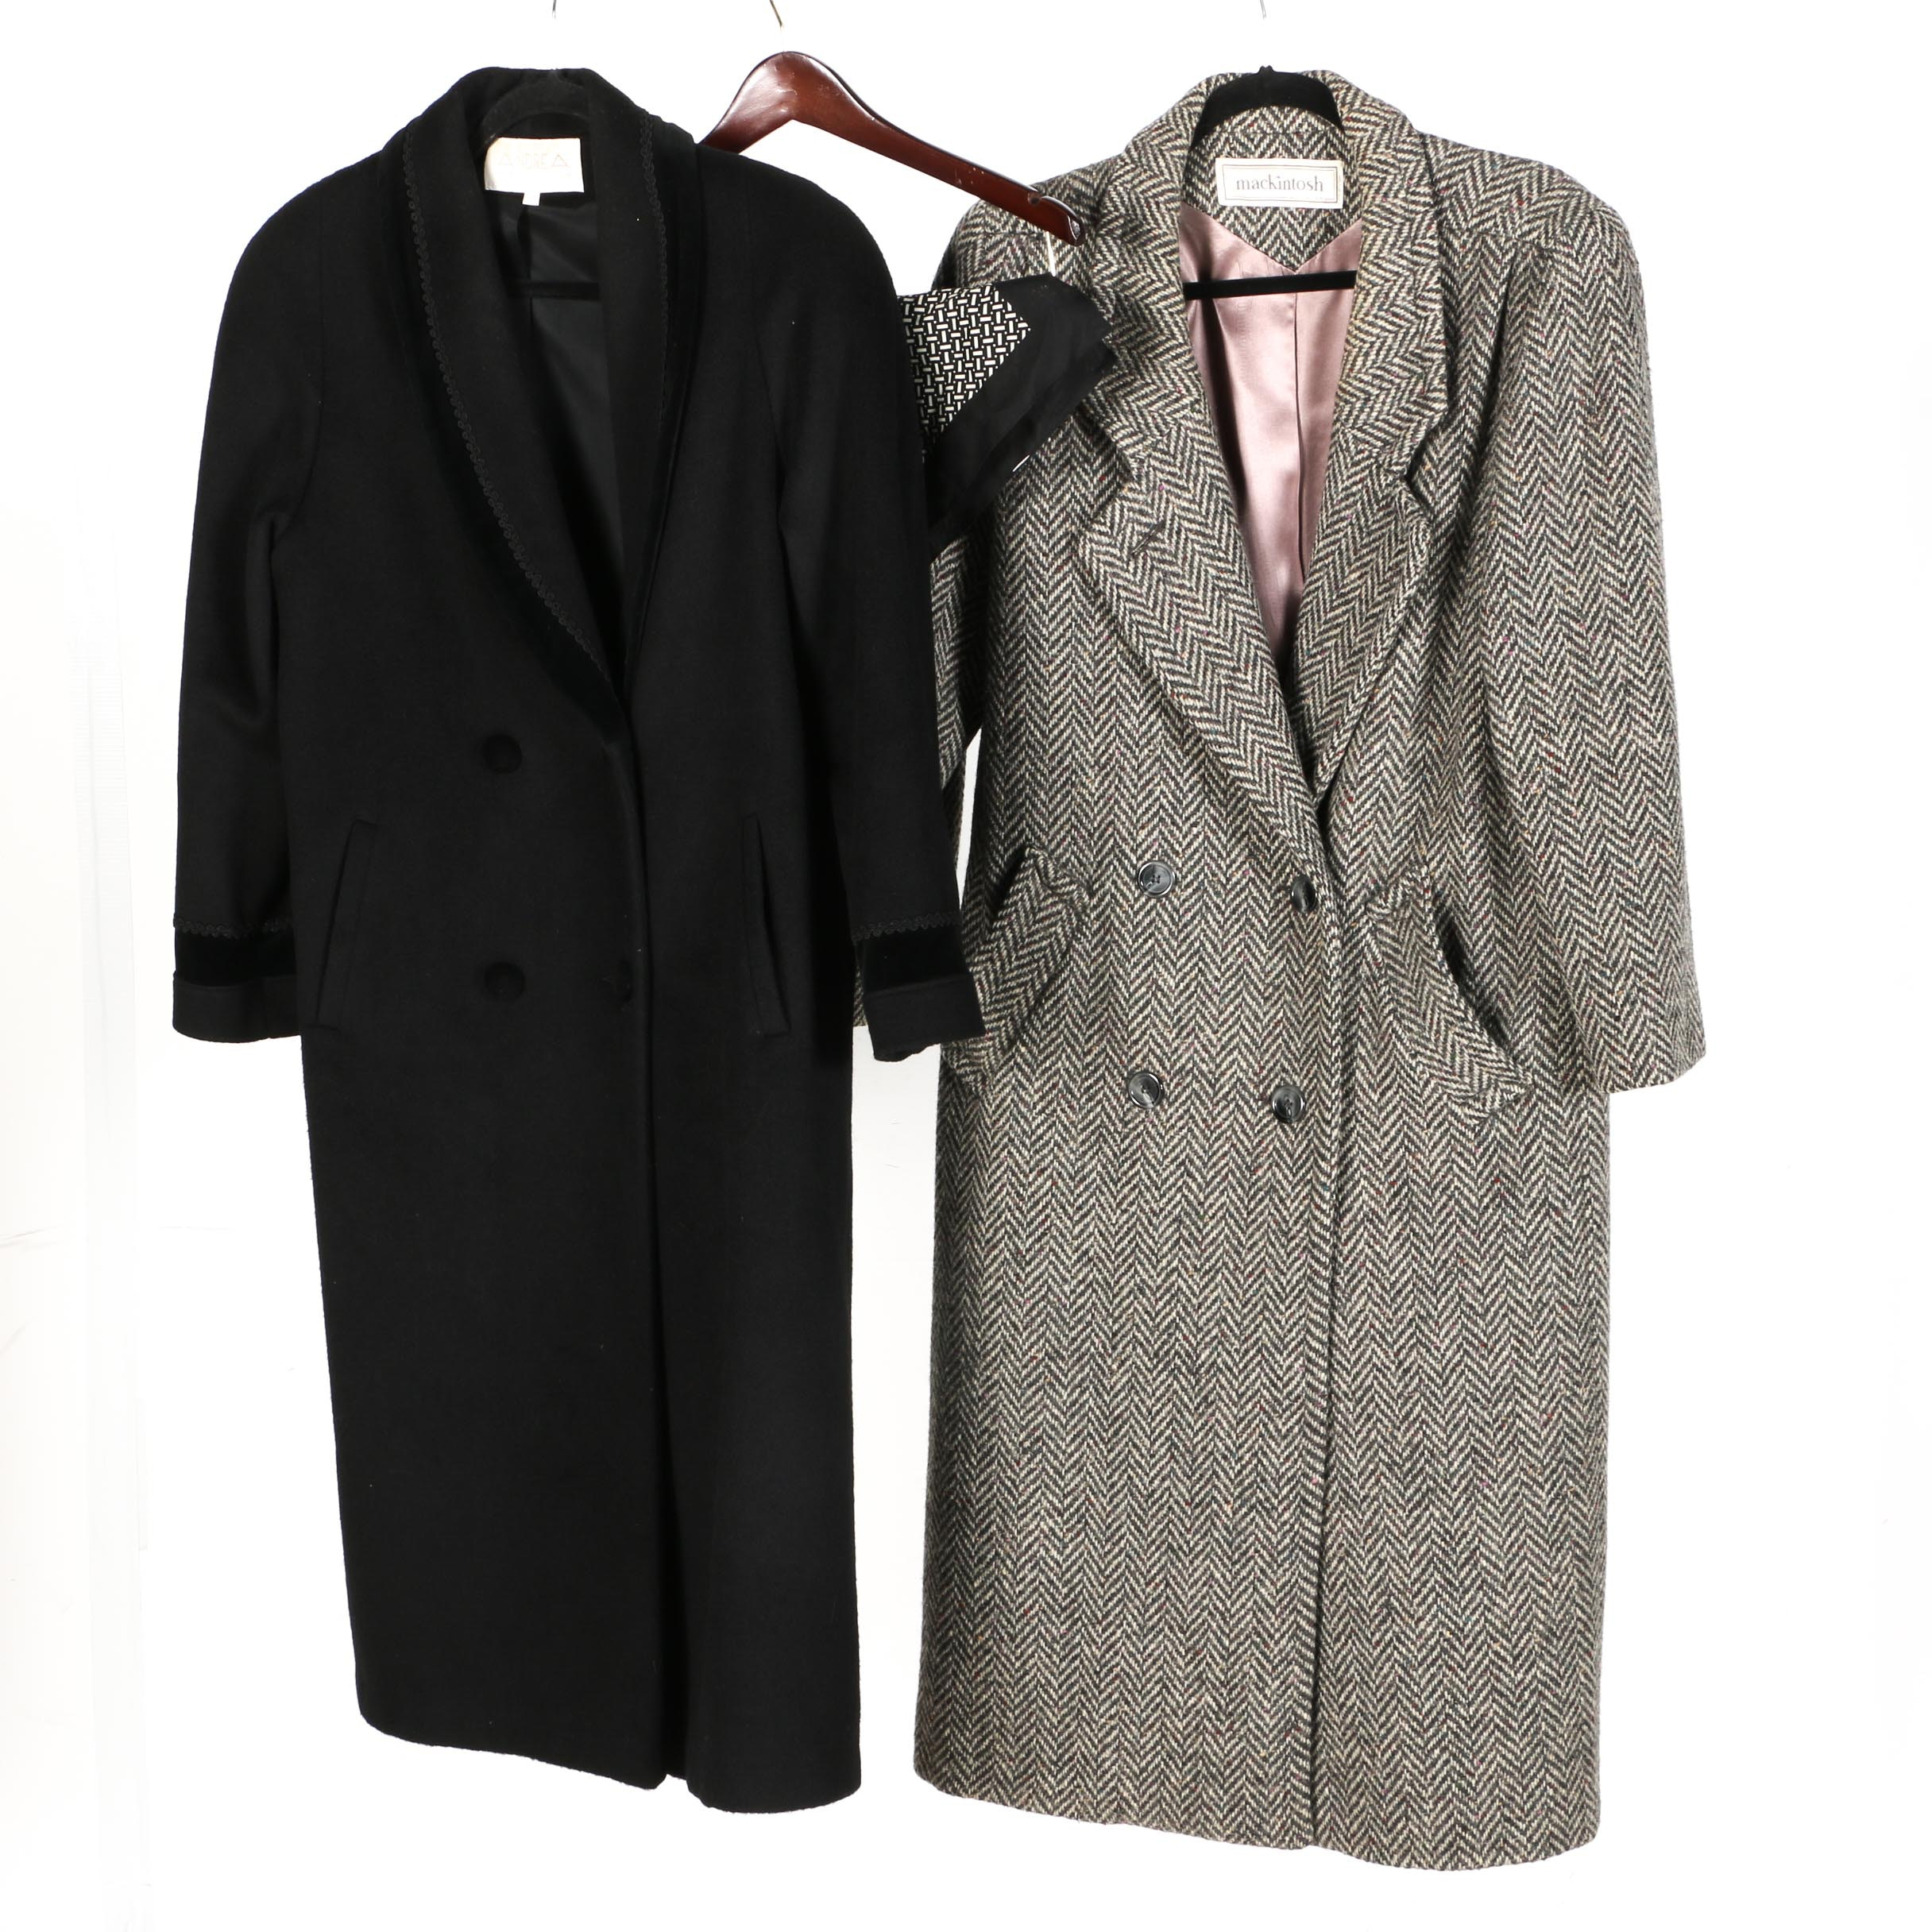 Women's Wool Coats with Dress Scarf